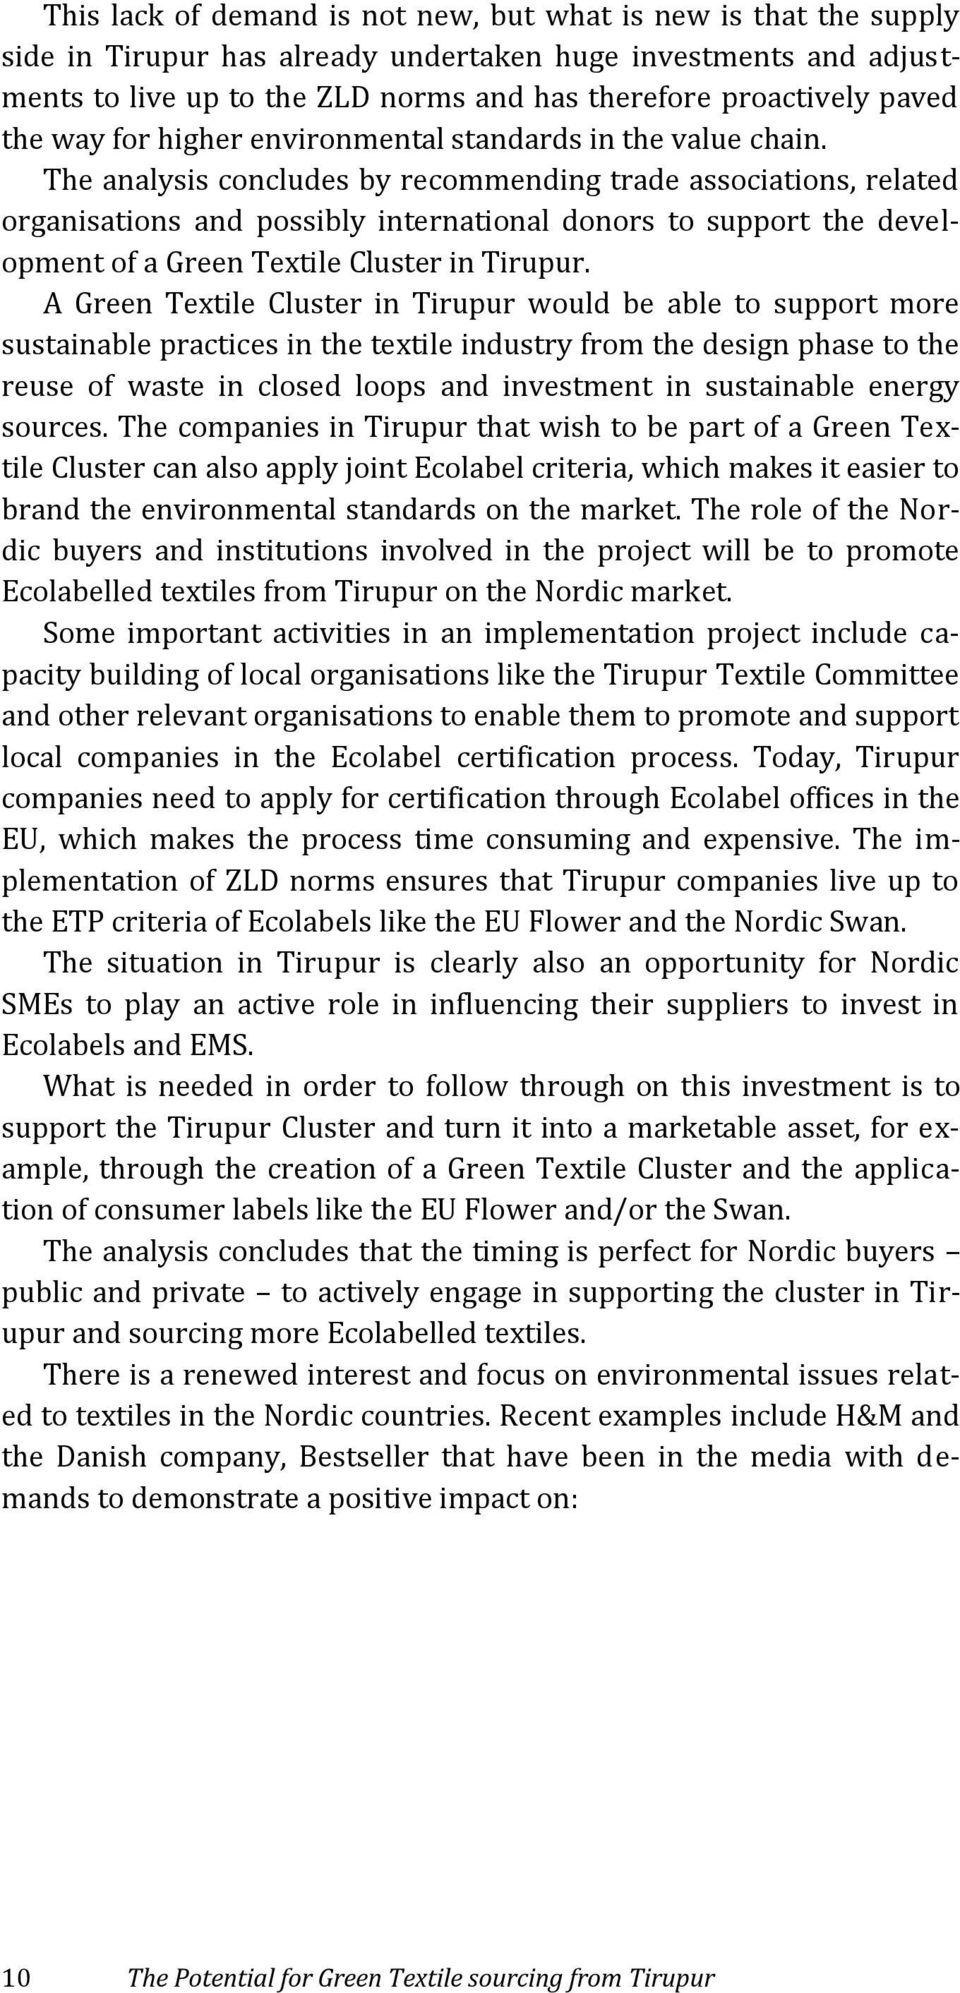 The analysis concludes by recommending trade associations, related organisations and possibly international donors to support the development of a Green Textile Cluster in Tirupur.